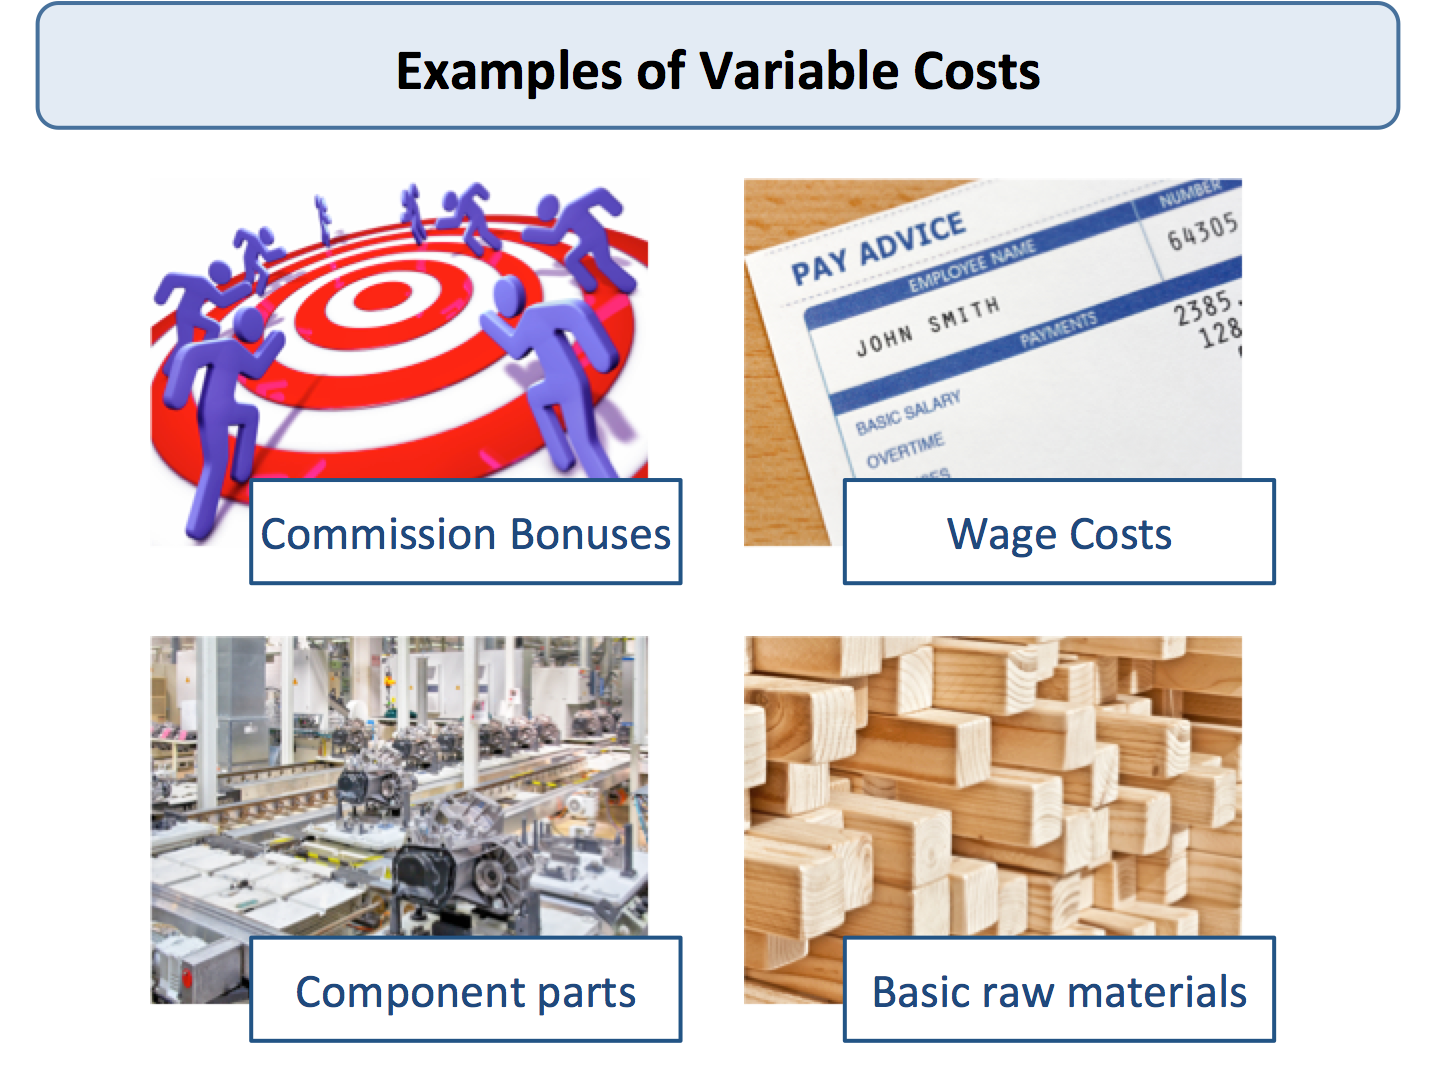 Examples of Variable Costs h3w3MV3V